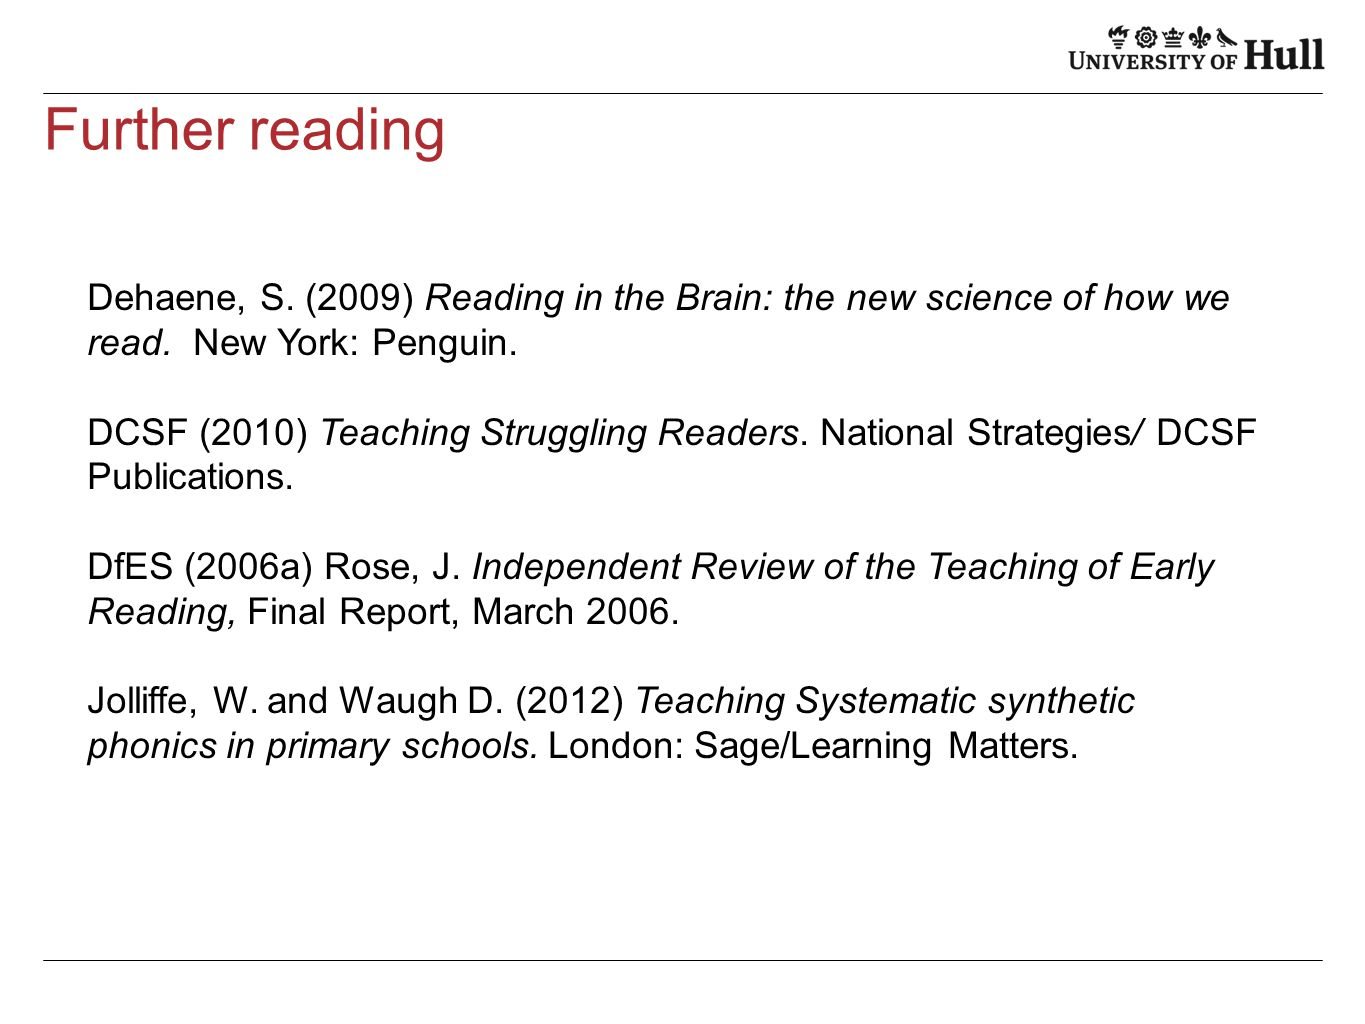 Further reading Dehaene, S. (2009) Reading in the Brain: the new science of how we read. New York: Penguin.